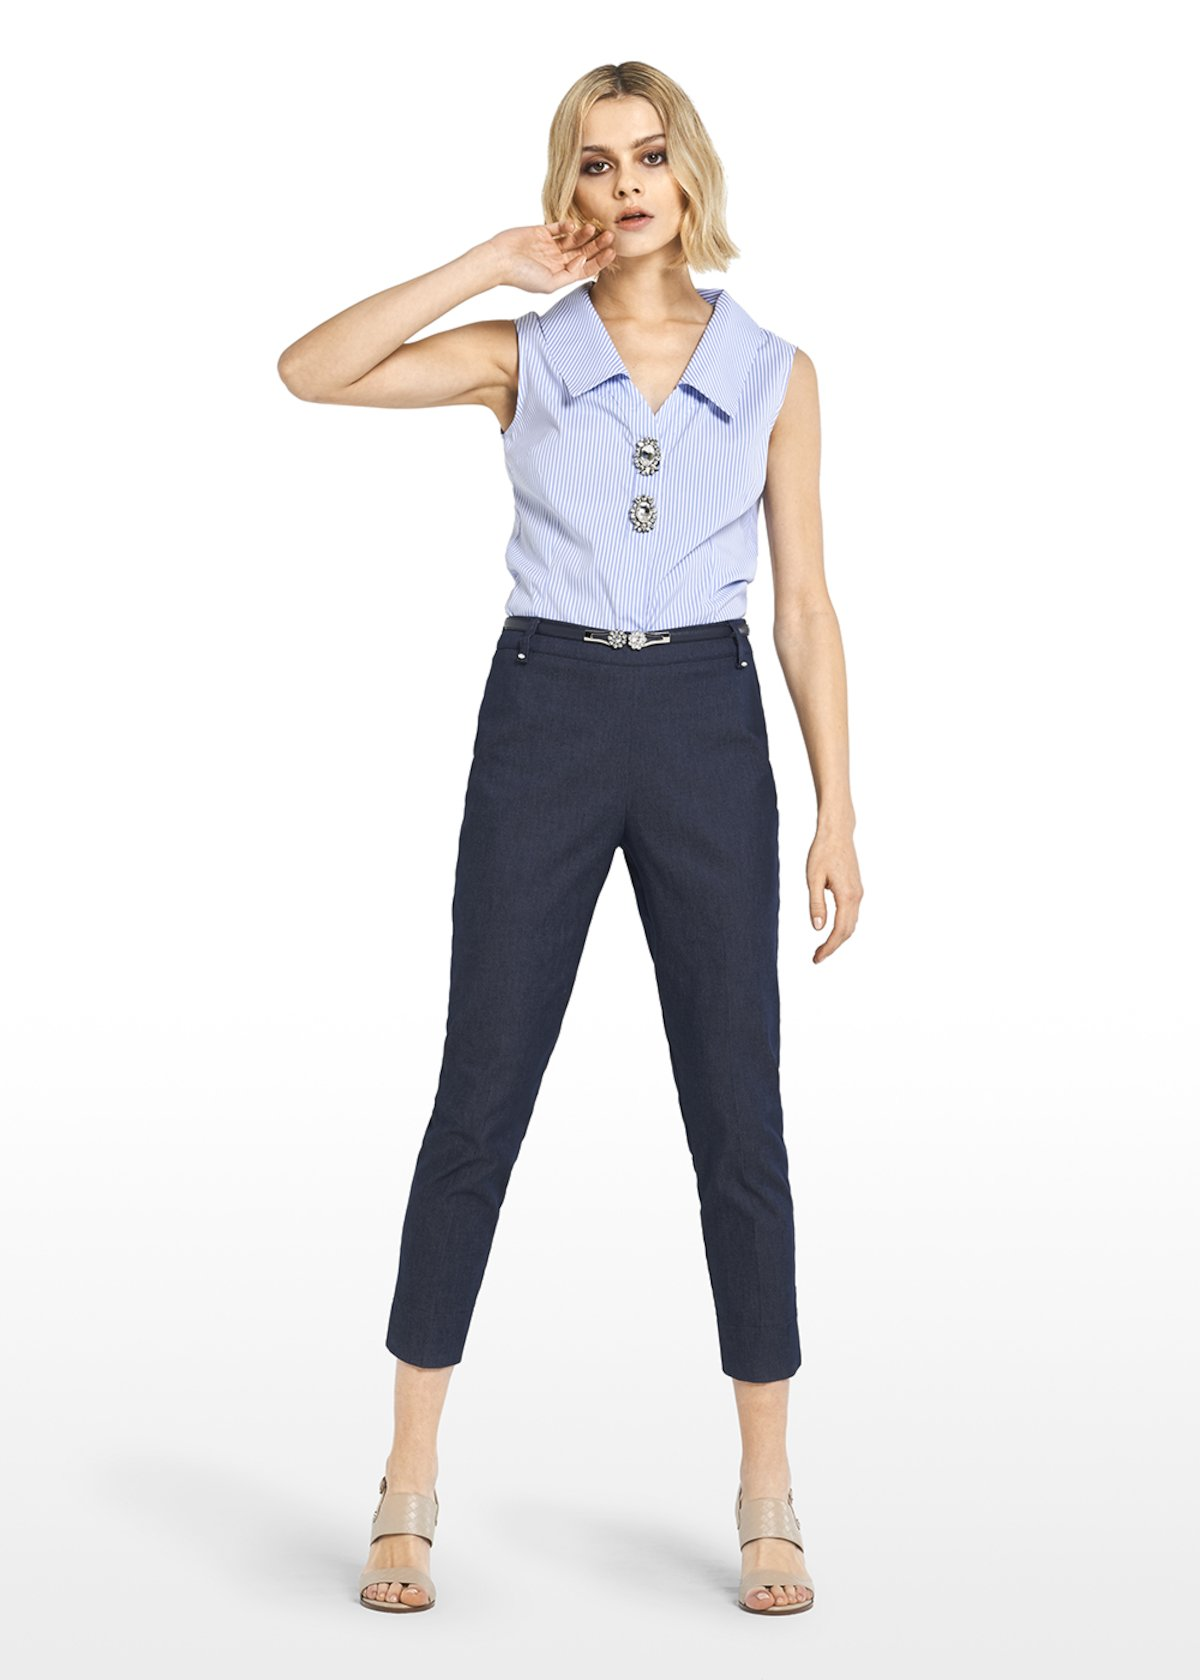 Clorinda shirt with jewel buttons - White / Blue Stripes - Woman